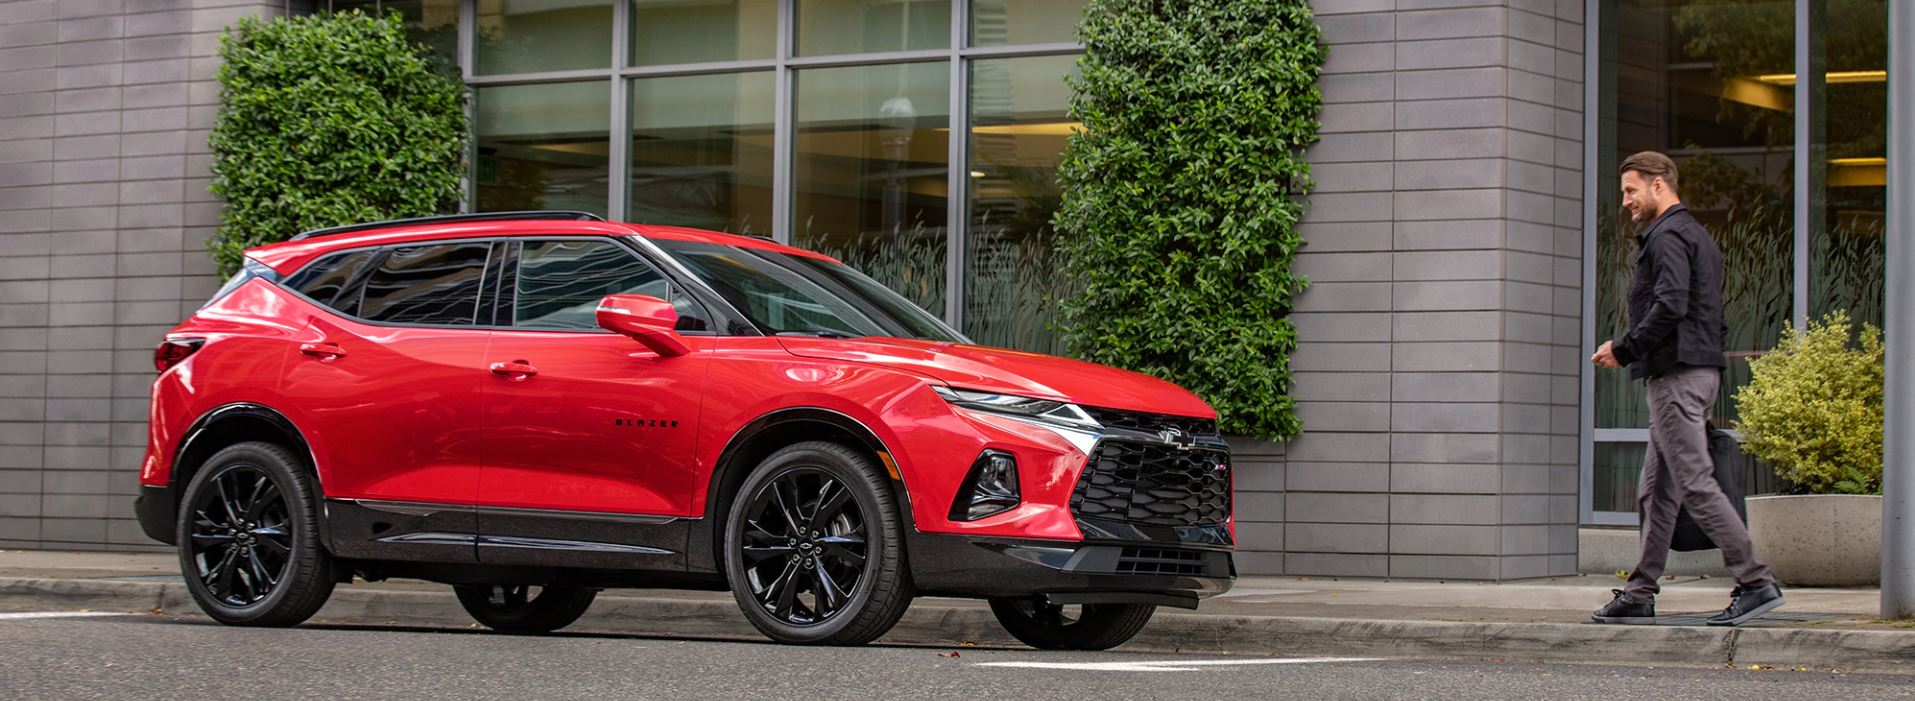 2020 Chevrolet Blazer for Sale near Fort Gratiot, MI